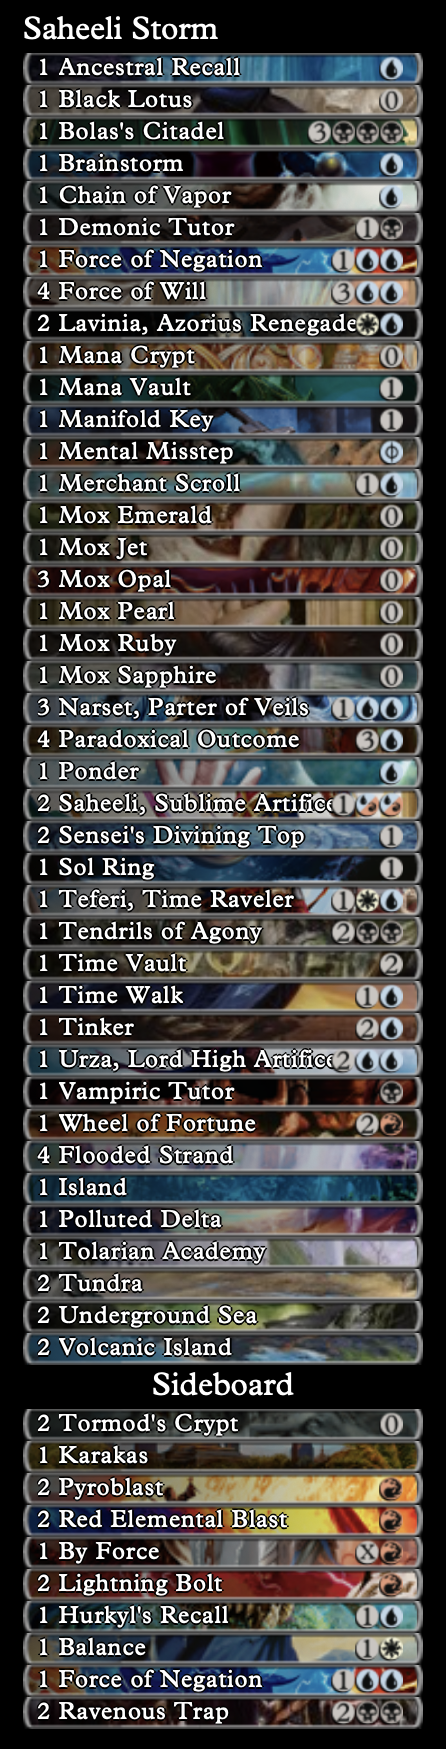 Vintage deck lists are so long.